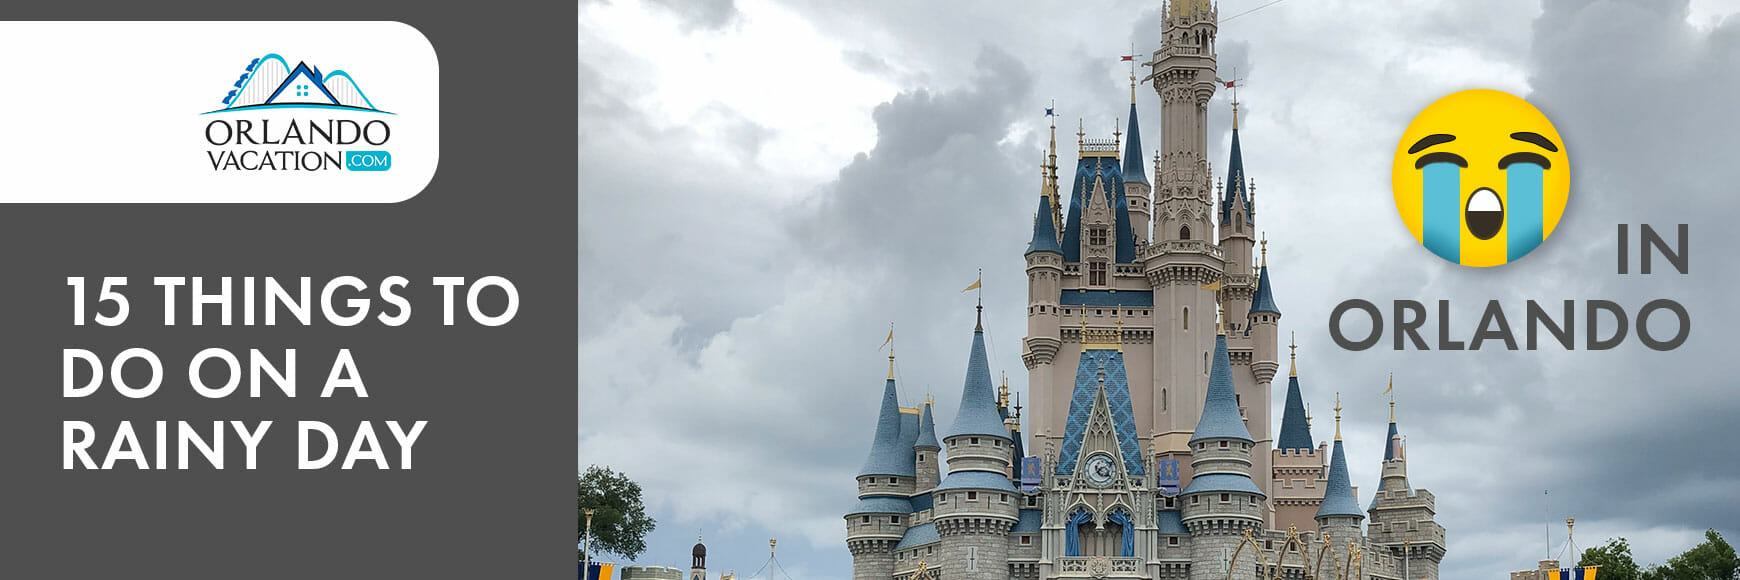 Things to do on Rainy Days in Orlando